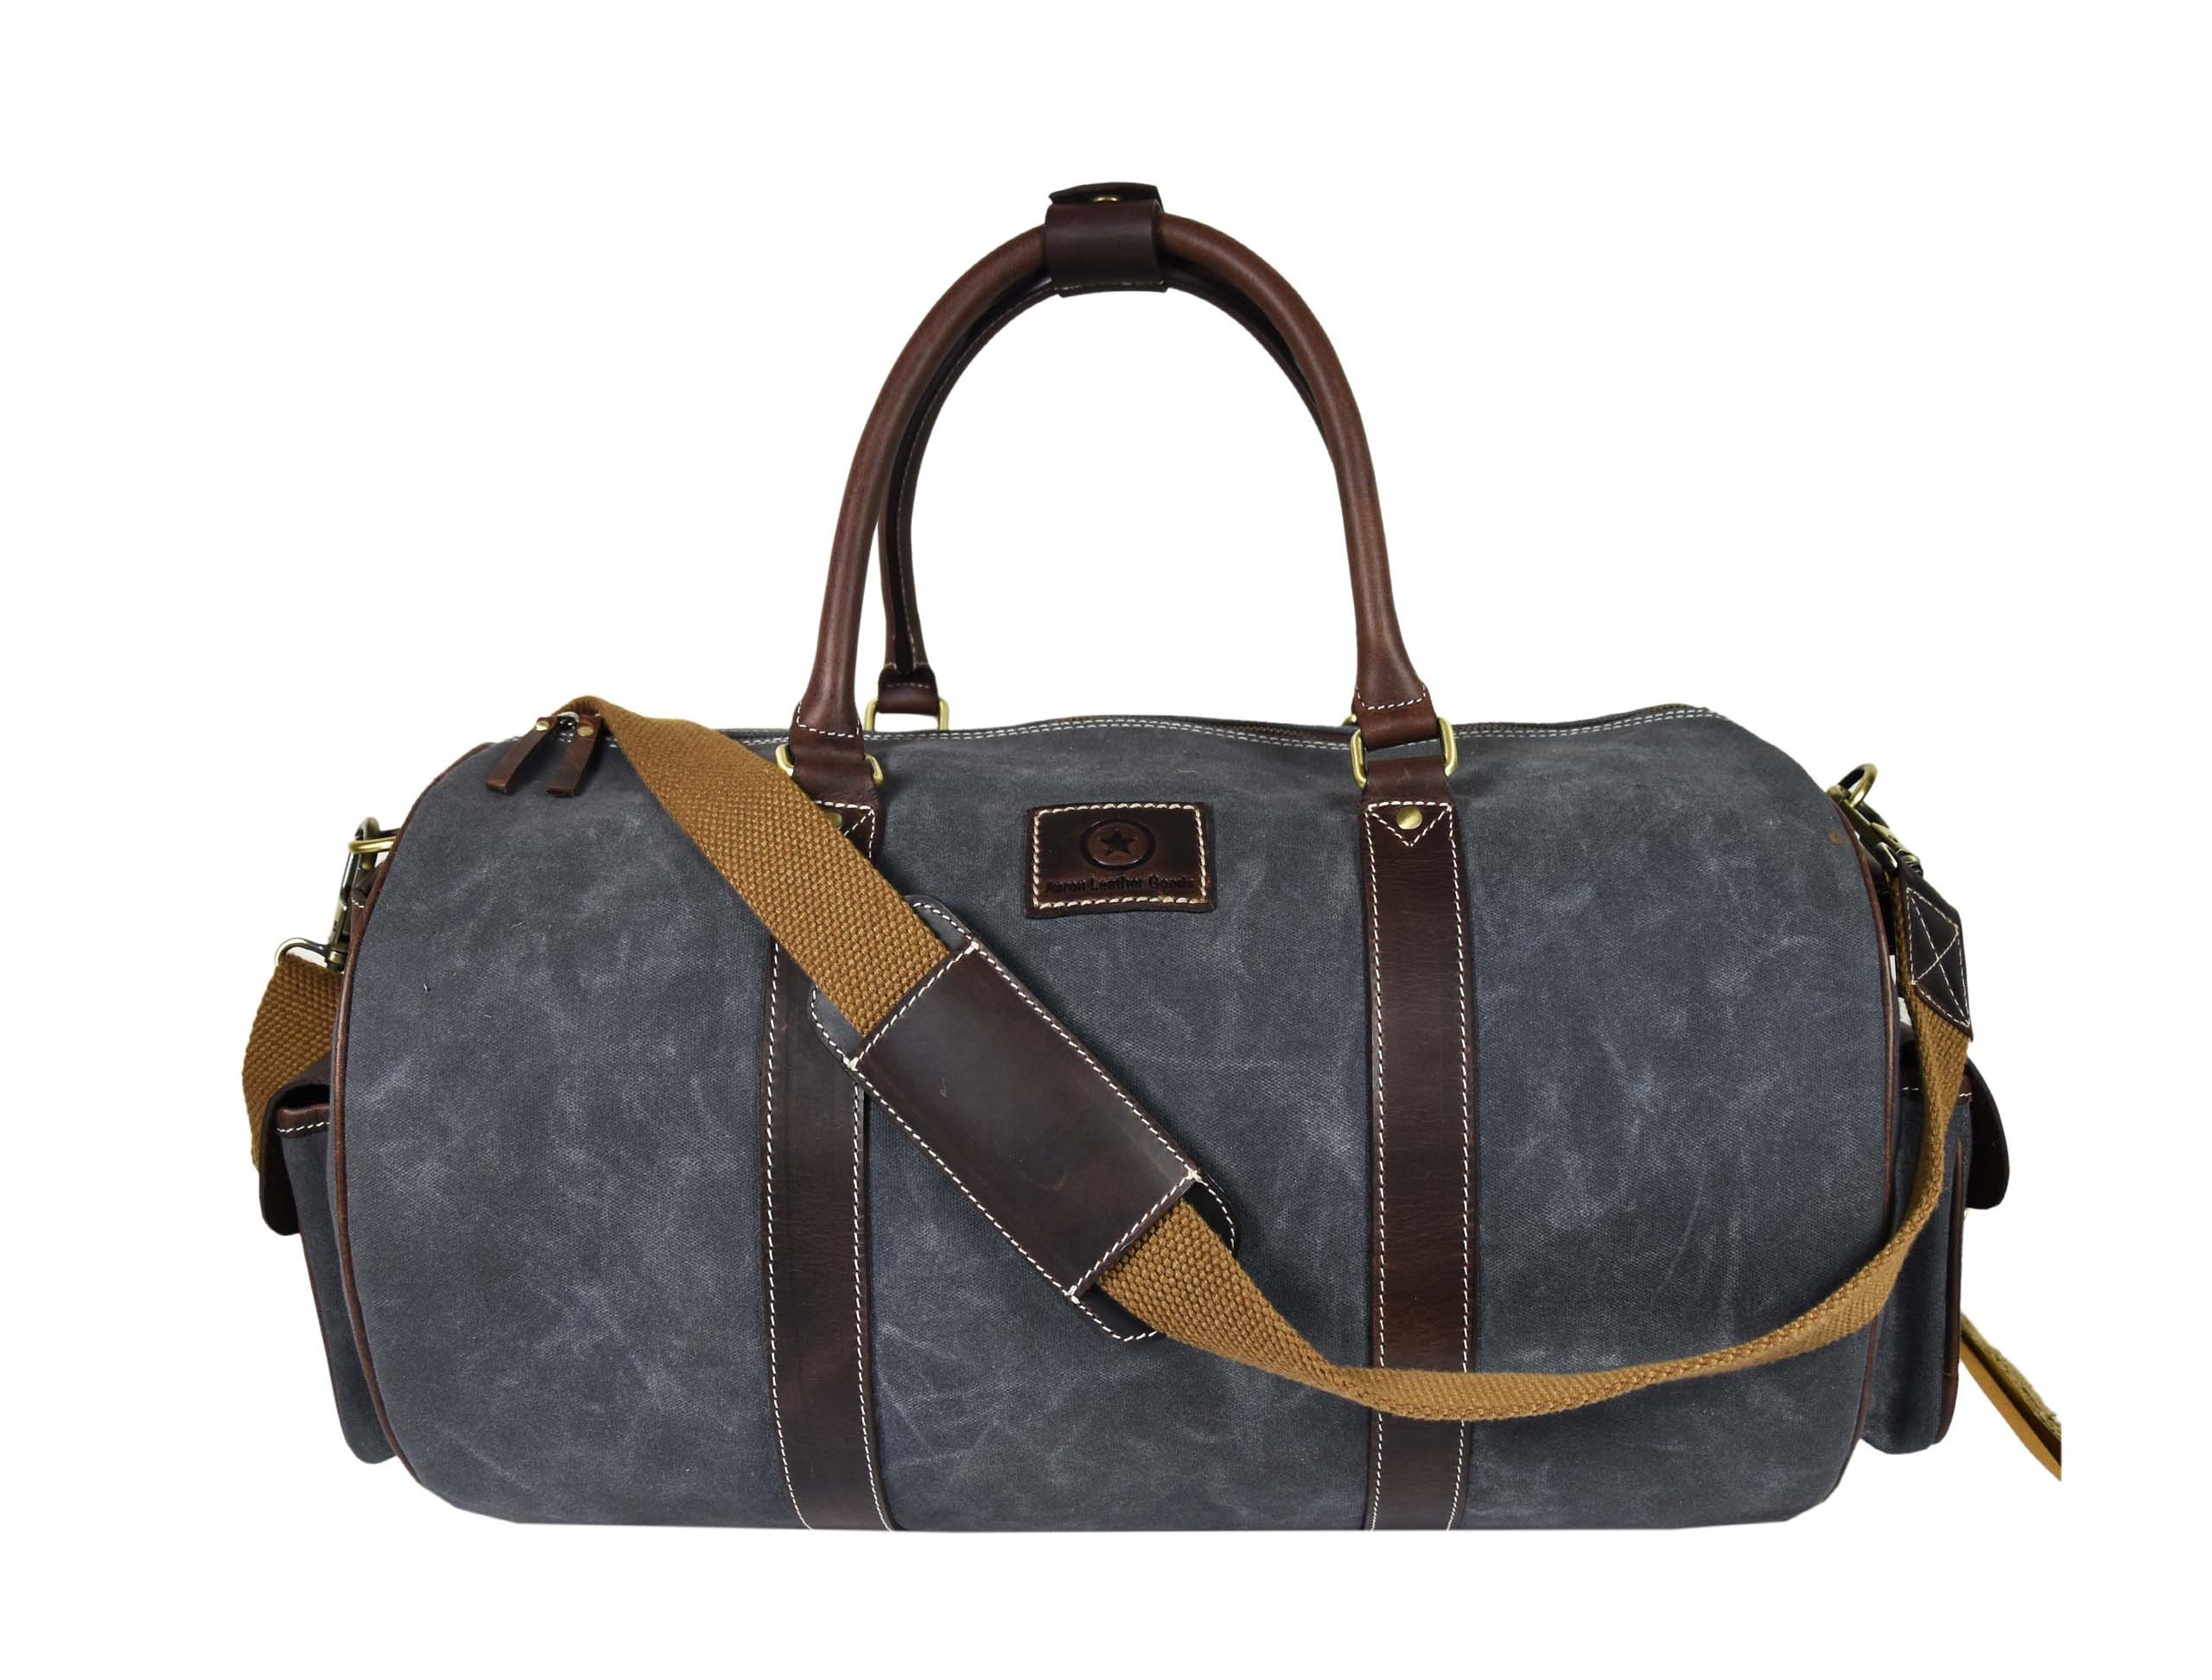 Water-Resistant Retro Style Travel Duffle Bag| Waxed Canvas Multi-Functional Weekender Bag | Unisex Holdall Bag By Aaron Leather (Grey)